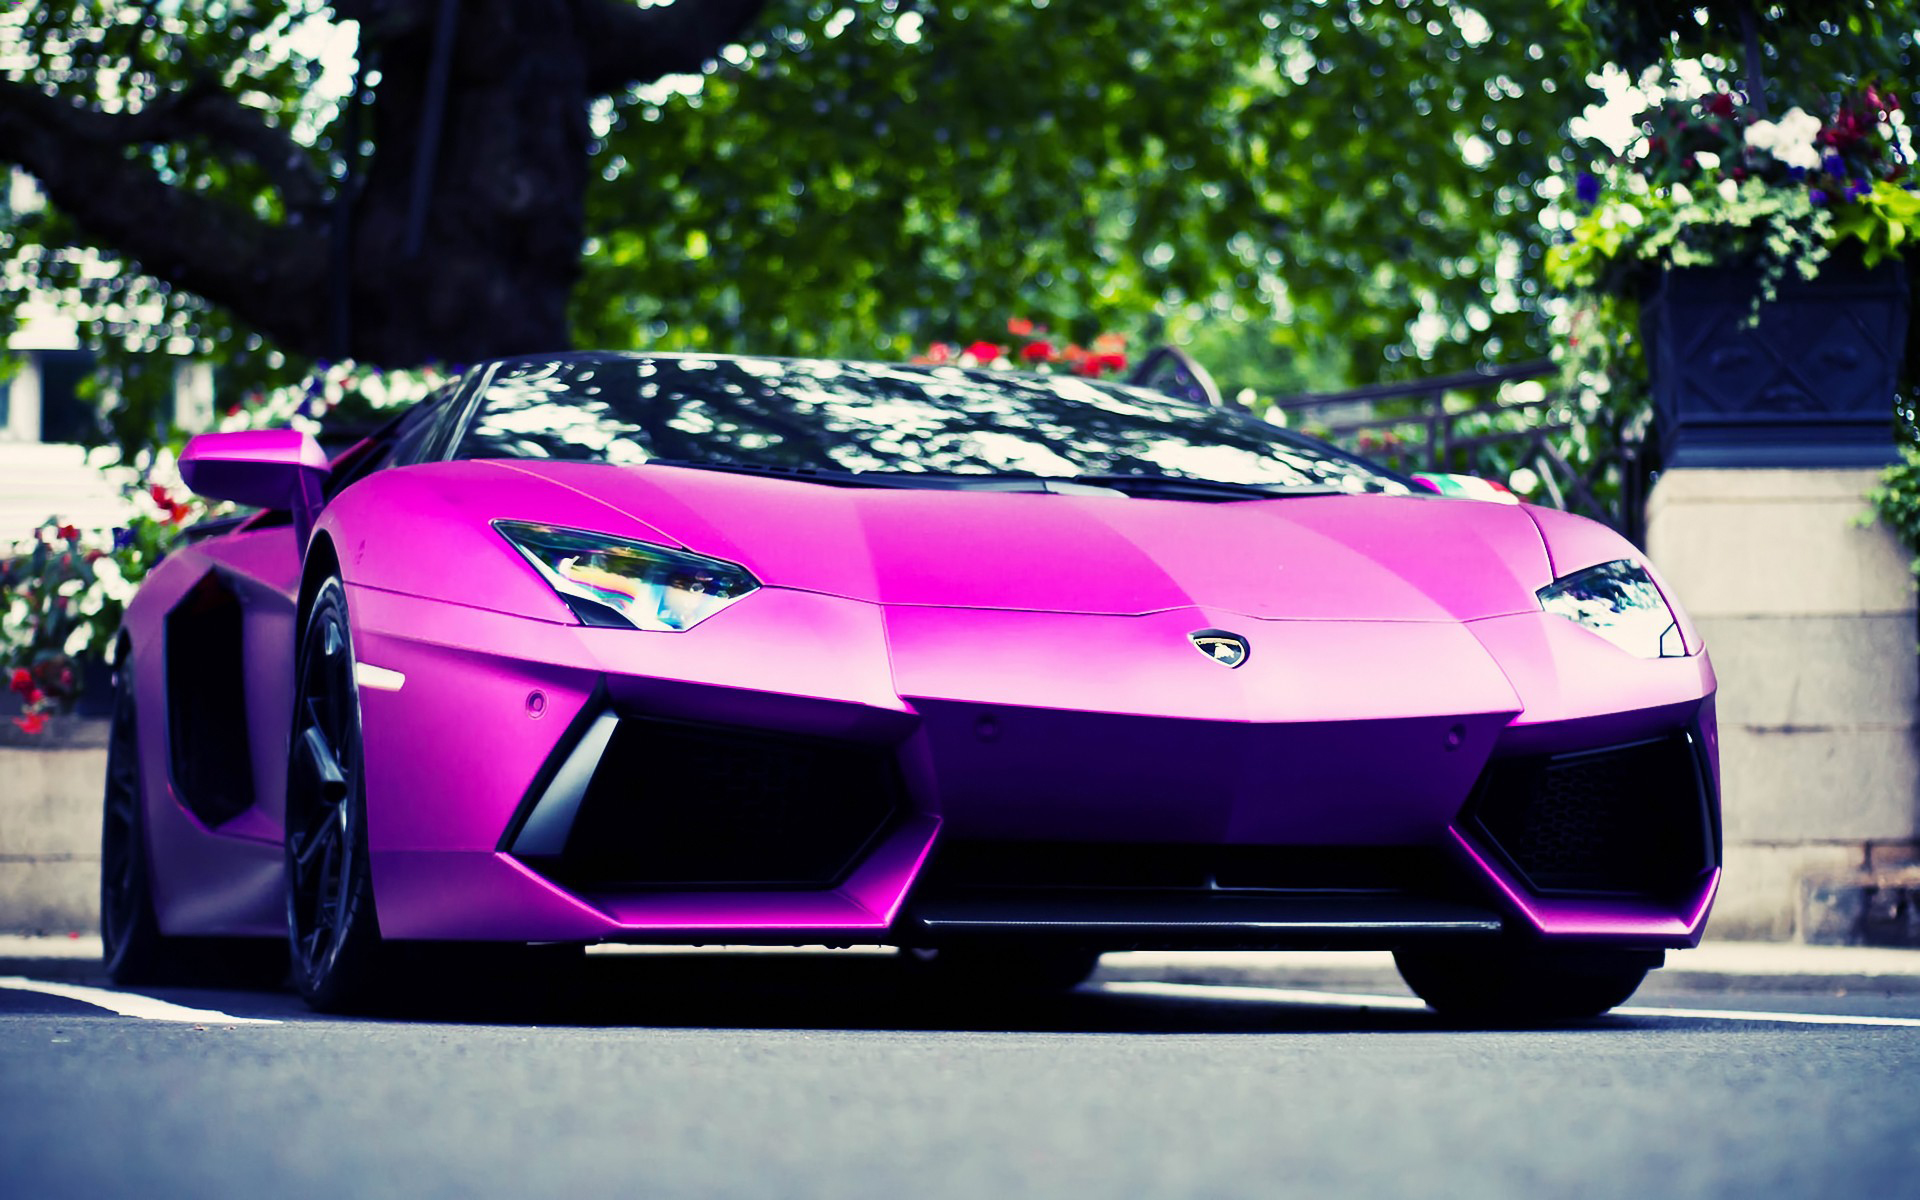 Lamborghini Aventador Wallpapers A50